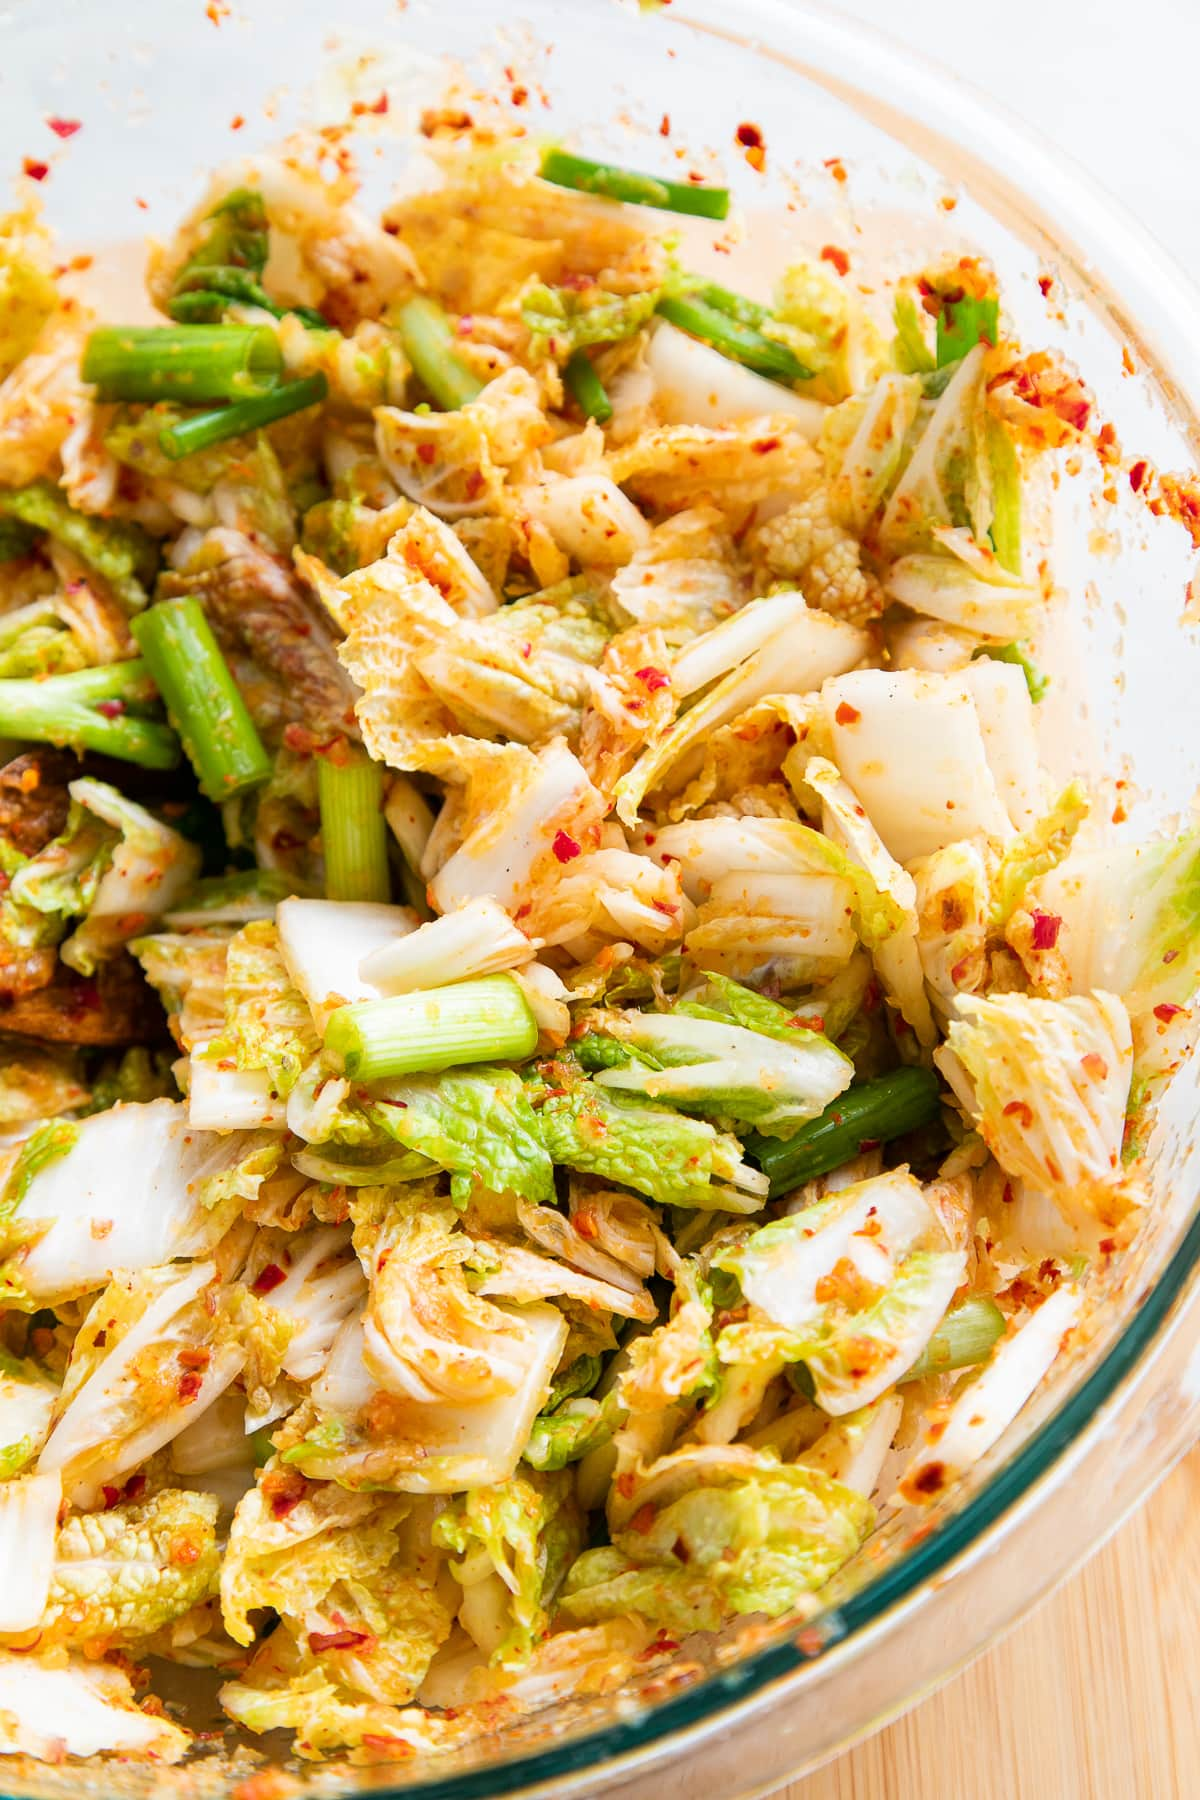 side angle view of freshly mixed cabbage and kimchi seasoning.